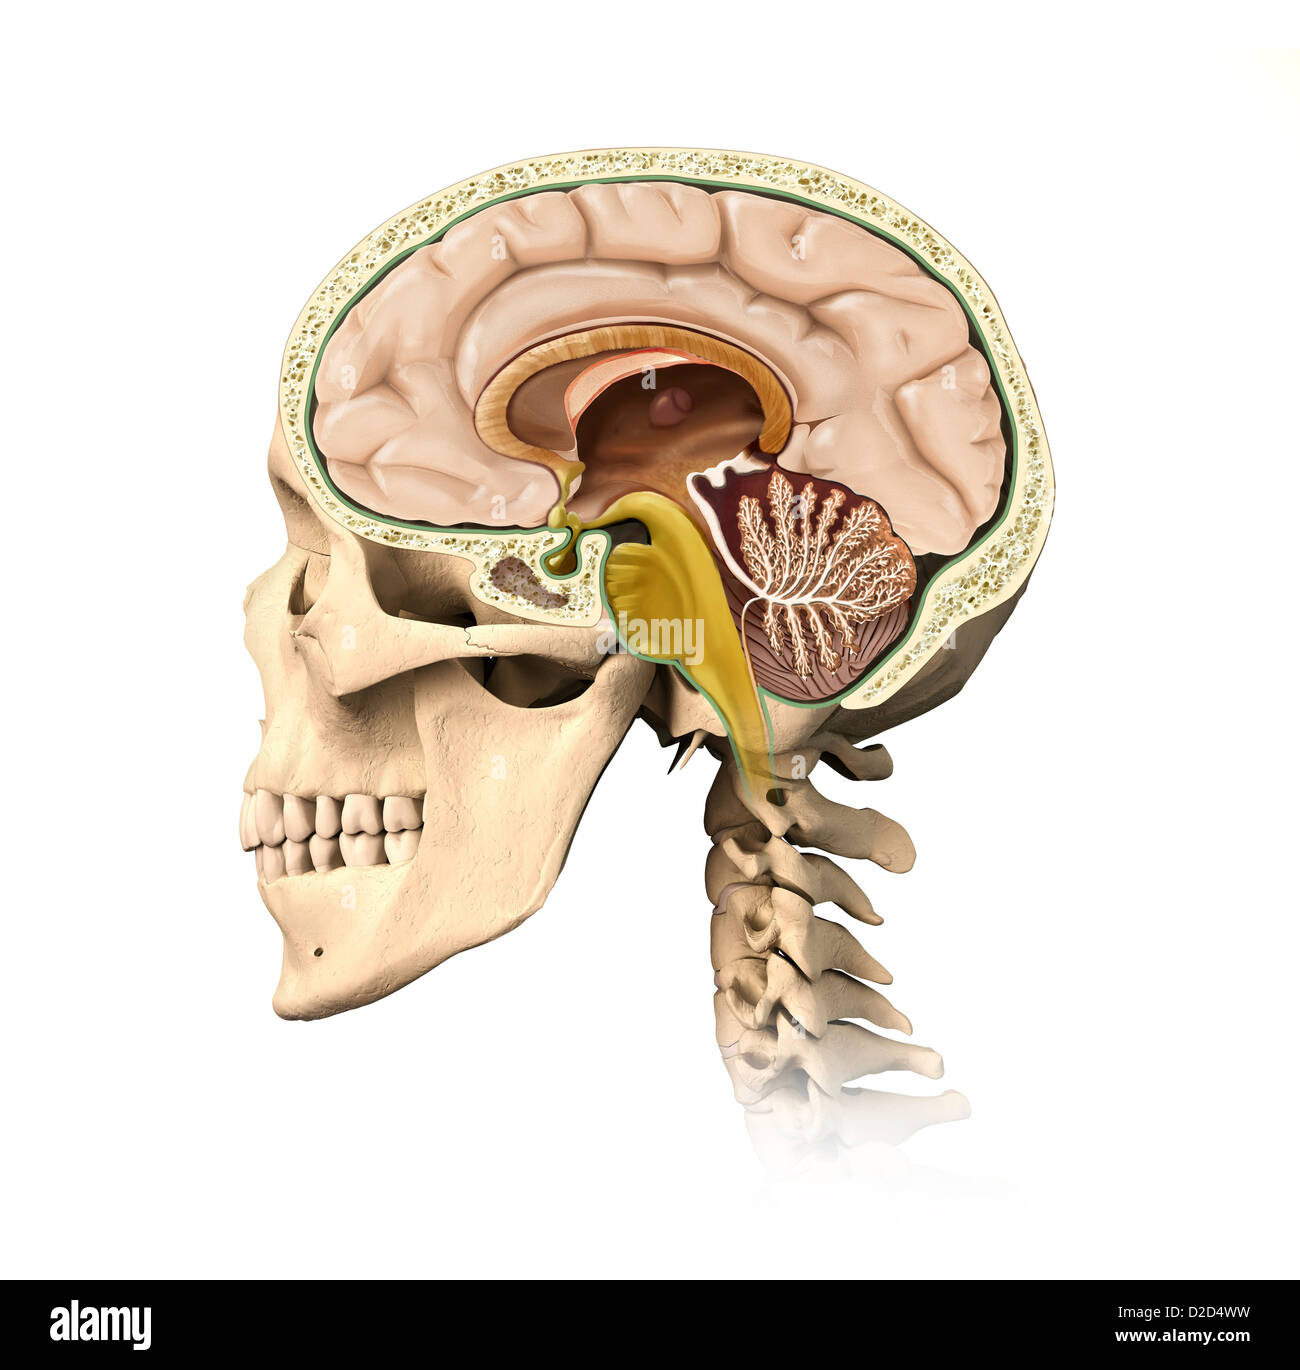 Anatomy Human Stockfotos & Anatomy Human Bilder - Alamy